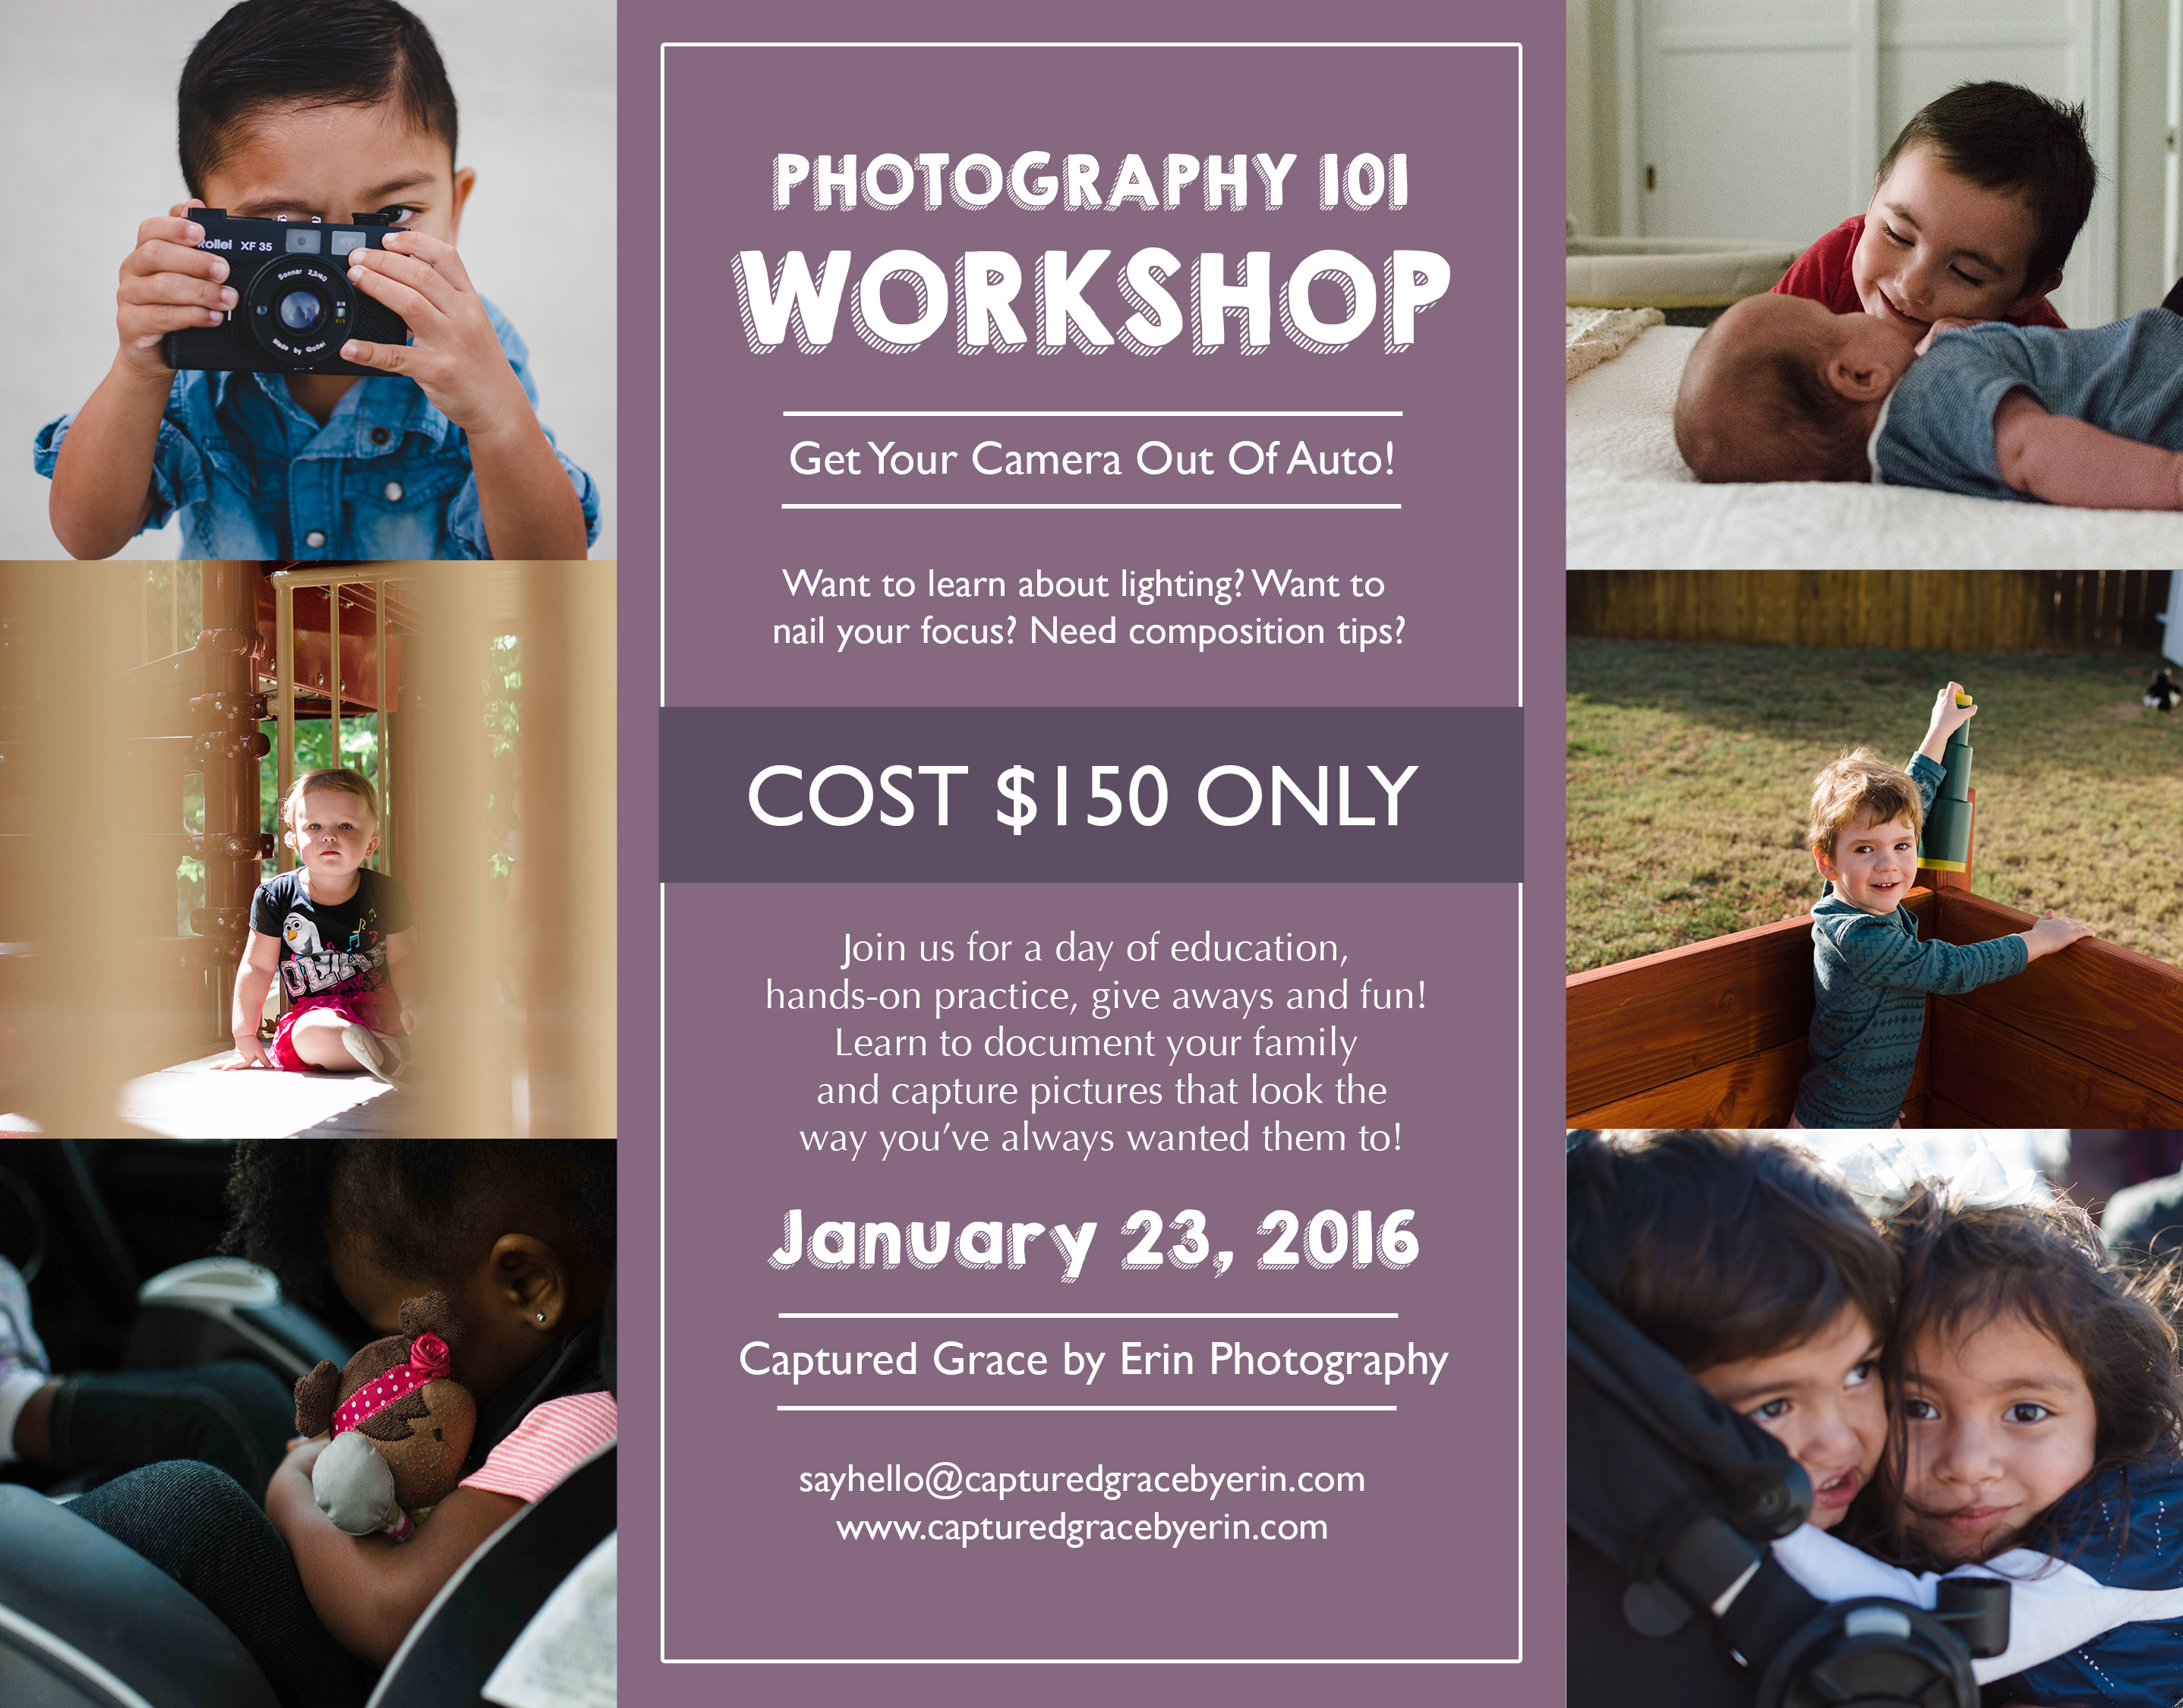 photo 101 workshop documentary family photography los angeles candid lifestyle